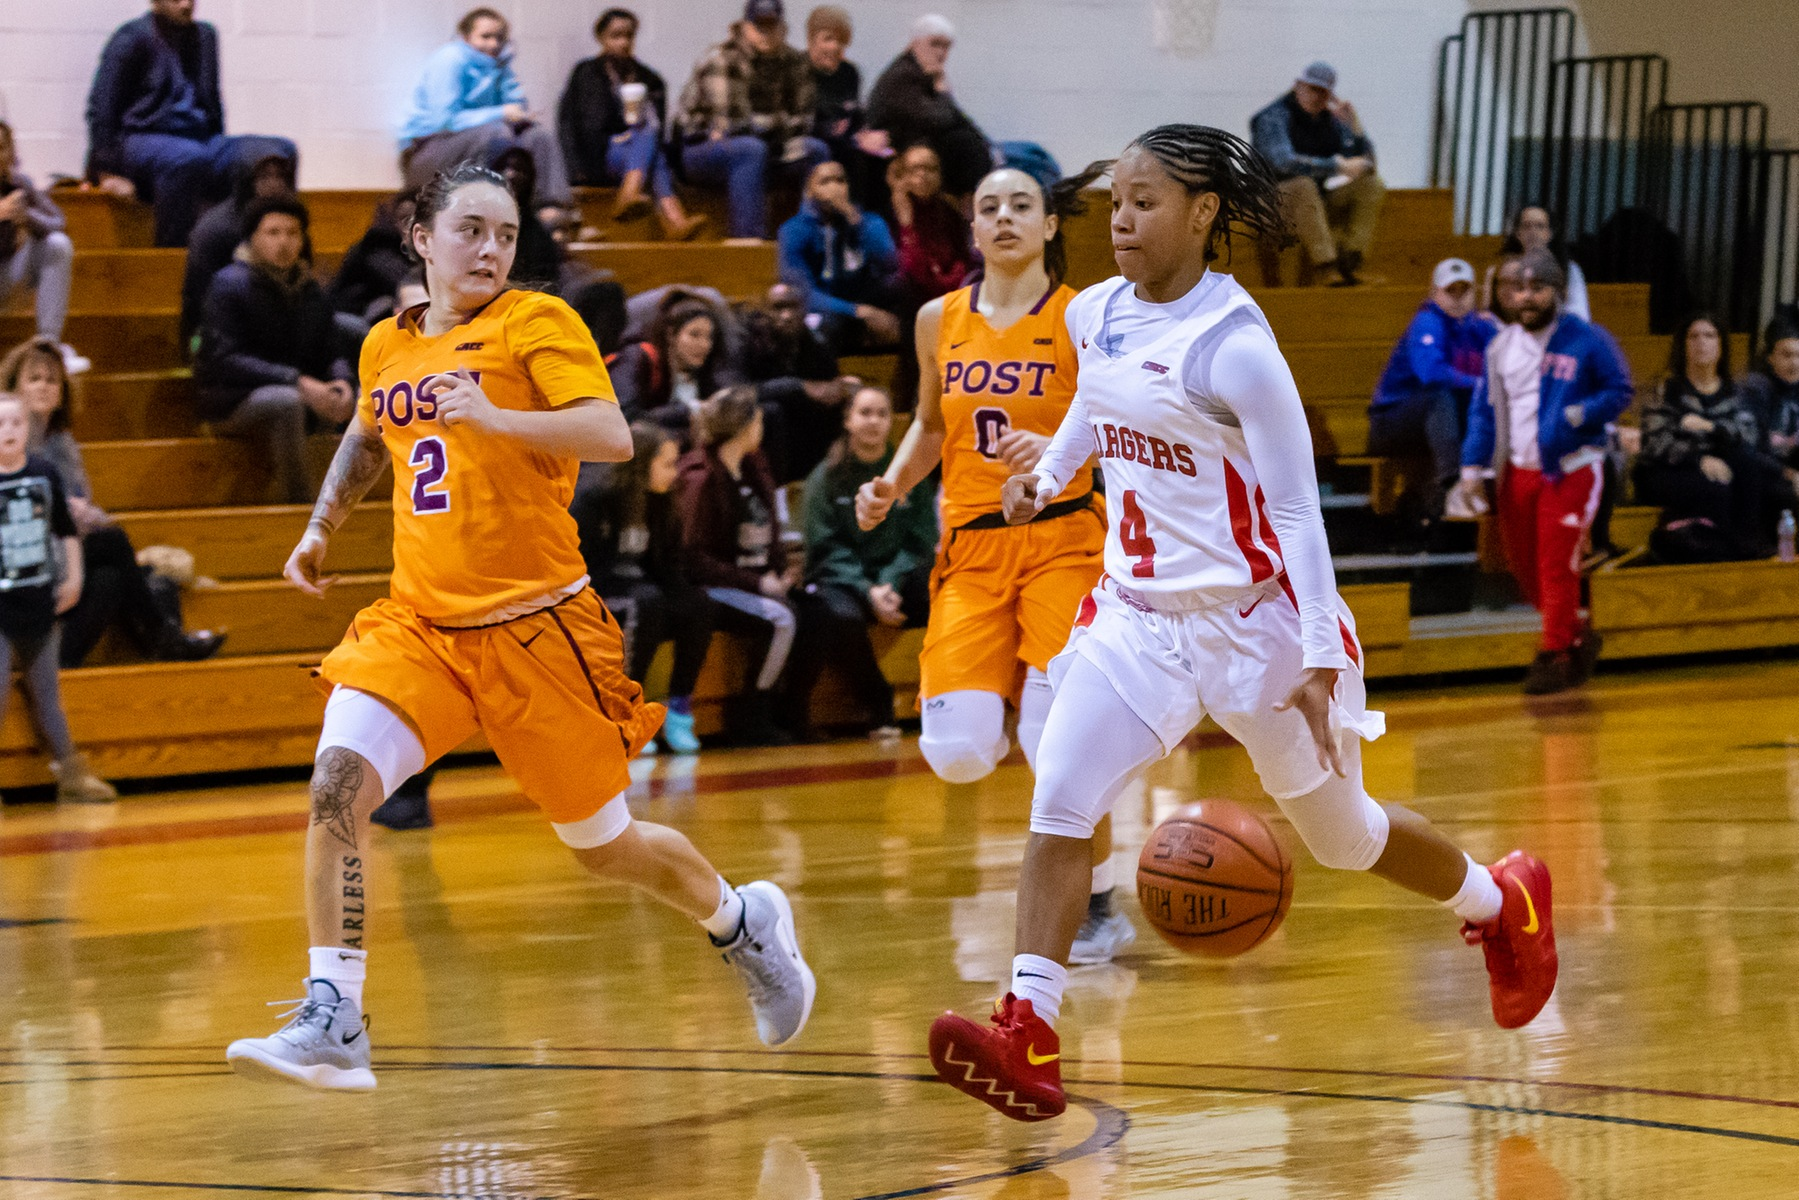 WOMEN'S BASKETBALL EARNS COMEBACK VICTORY OVER CONCORDIA